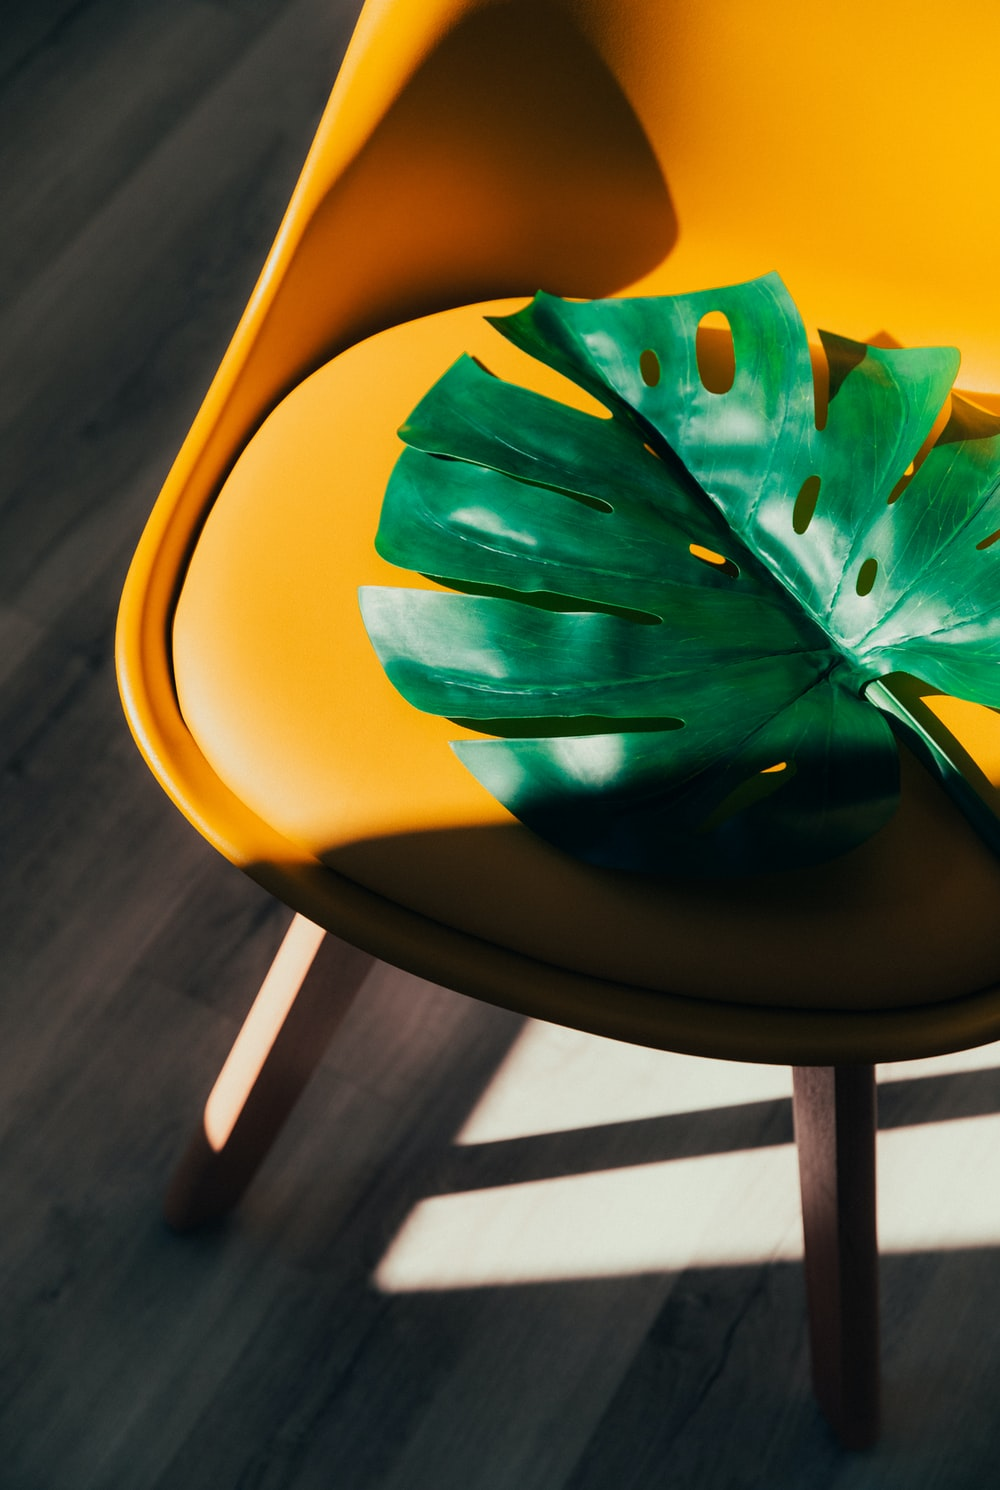 green leaf on yellow chair